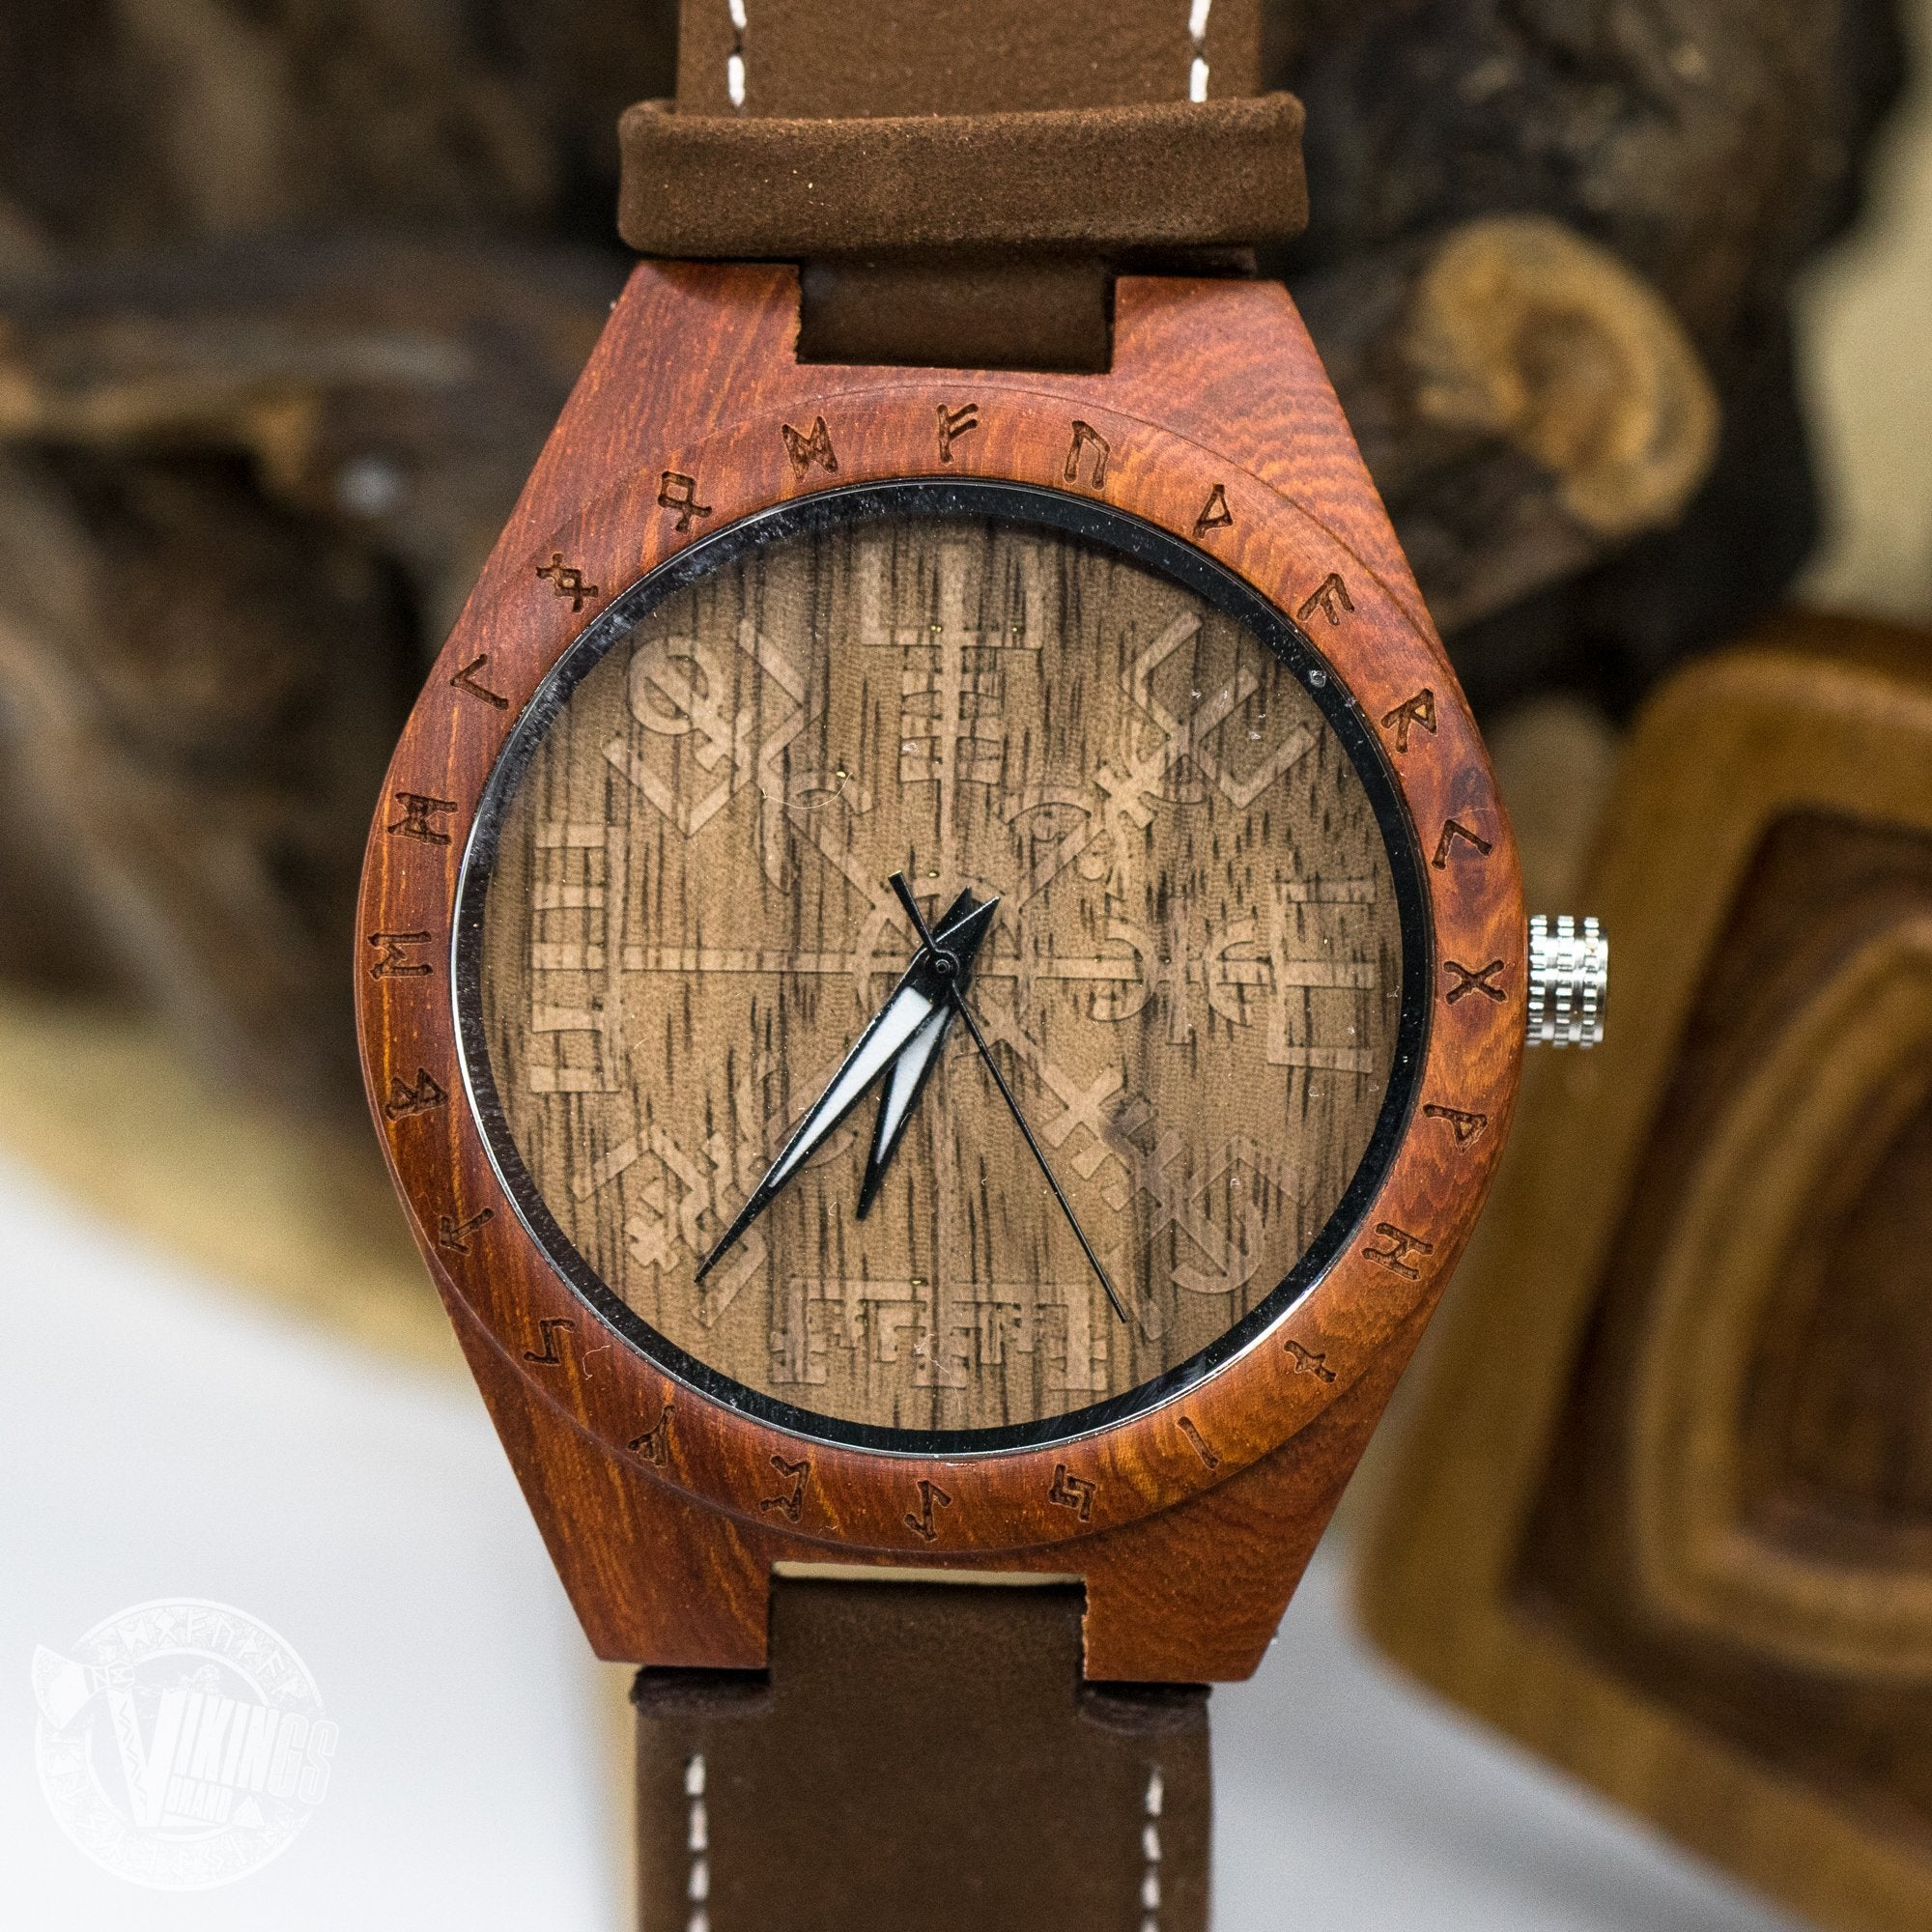 SALE! Inge Viking Wooden Runic Circle Watch with Helm of Awe Viking Symbol & Engraved Saying on the Back - VikingsBrand